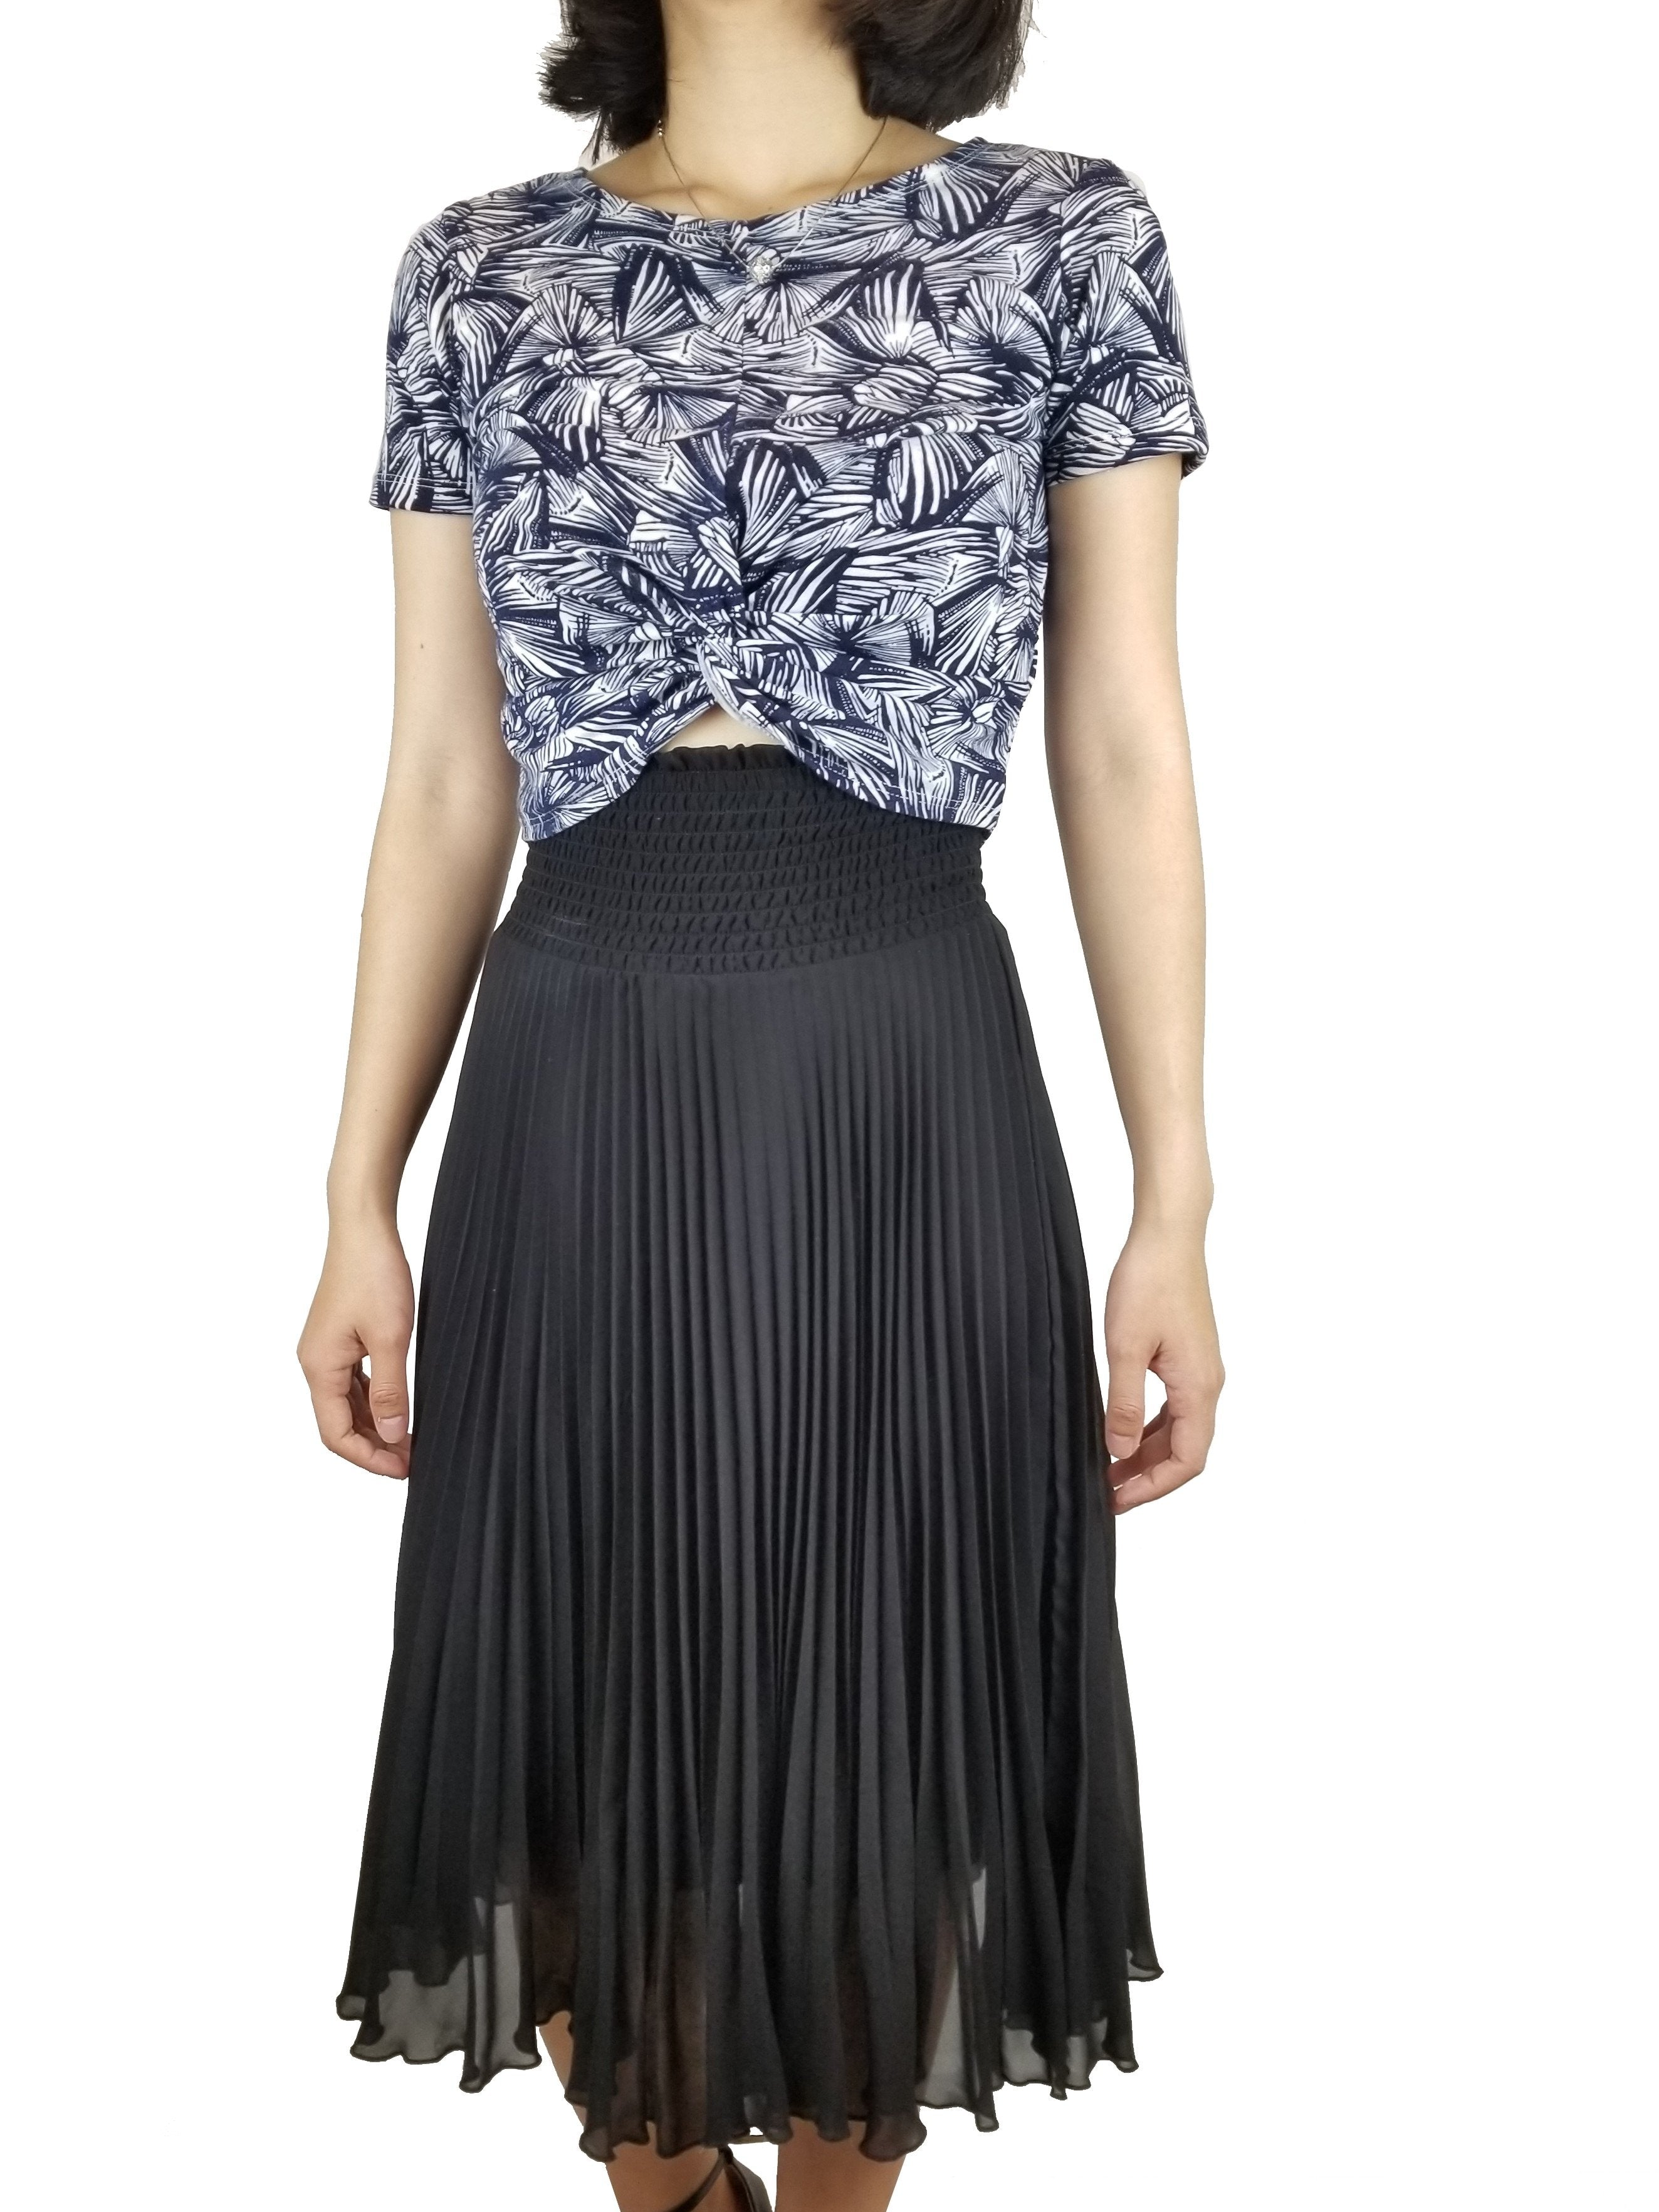 Wilfred Black Pleated Skirt, A line pleated skirt. High rise. Very soft material, Black, 100% Polyester, women's Skirts & Shorts, women's Black Skirts & Shorts, Wilfred women's Skirts & Shorts, skirt, women's pricess silhouette skirt, A-line skirt, pleated skirt